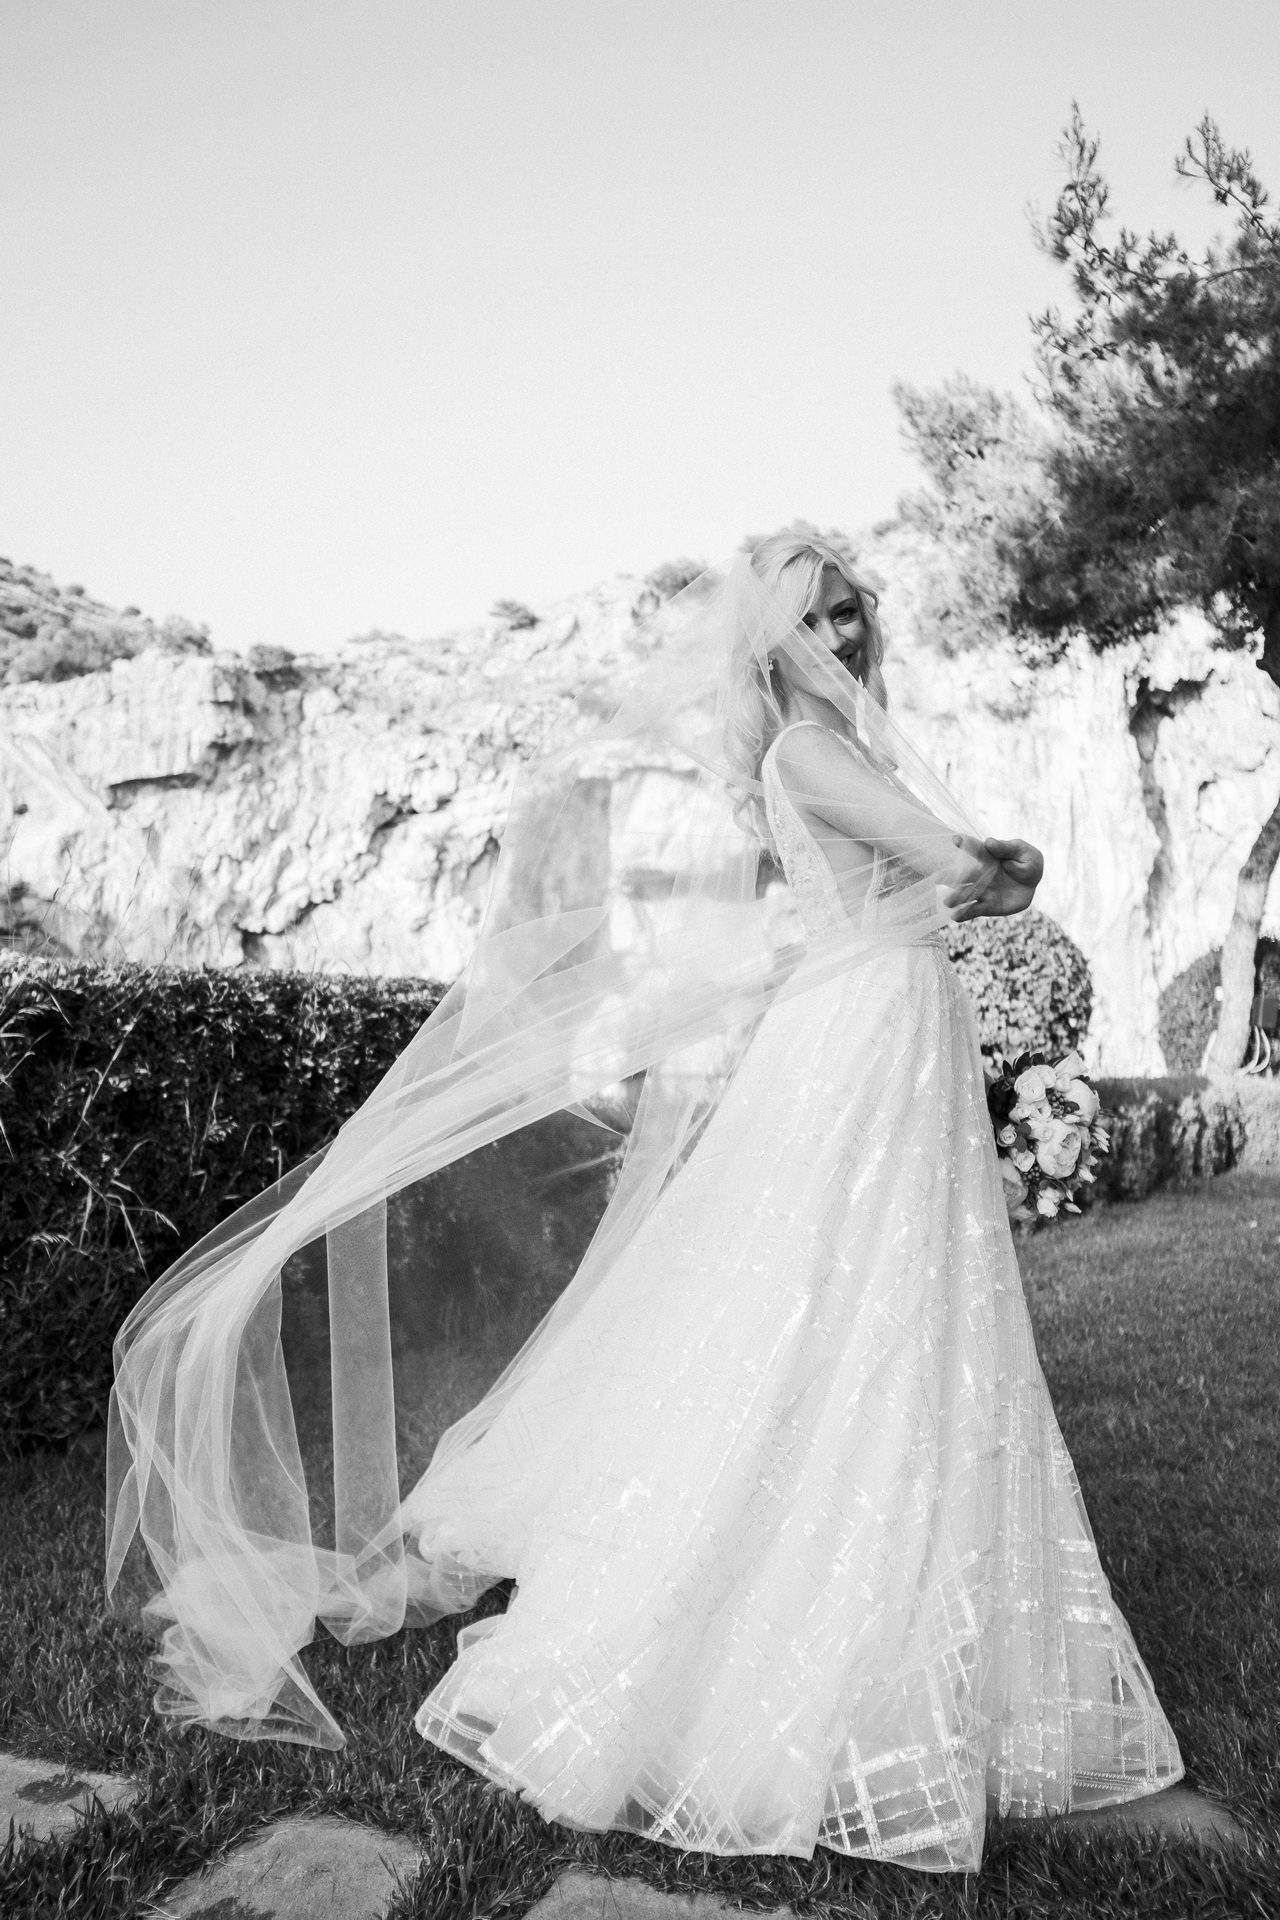 Destination wedding in Greece, bride at Lake Vouliagmeni